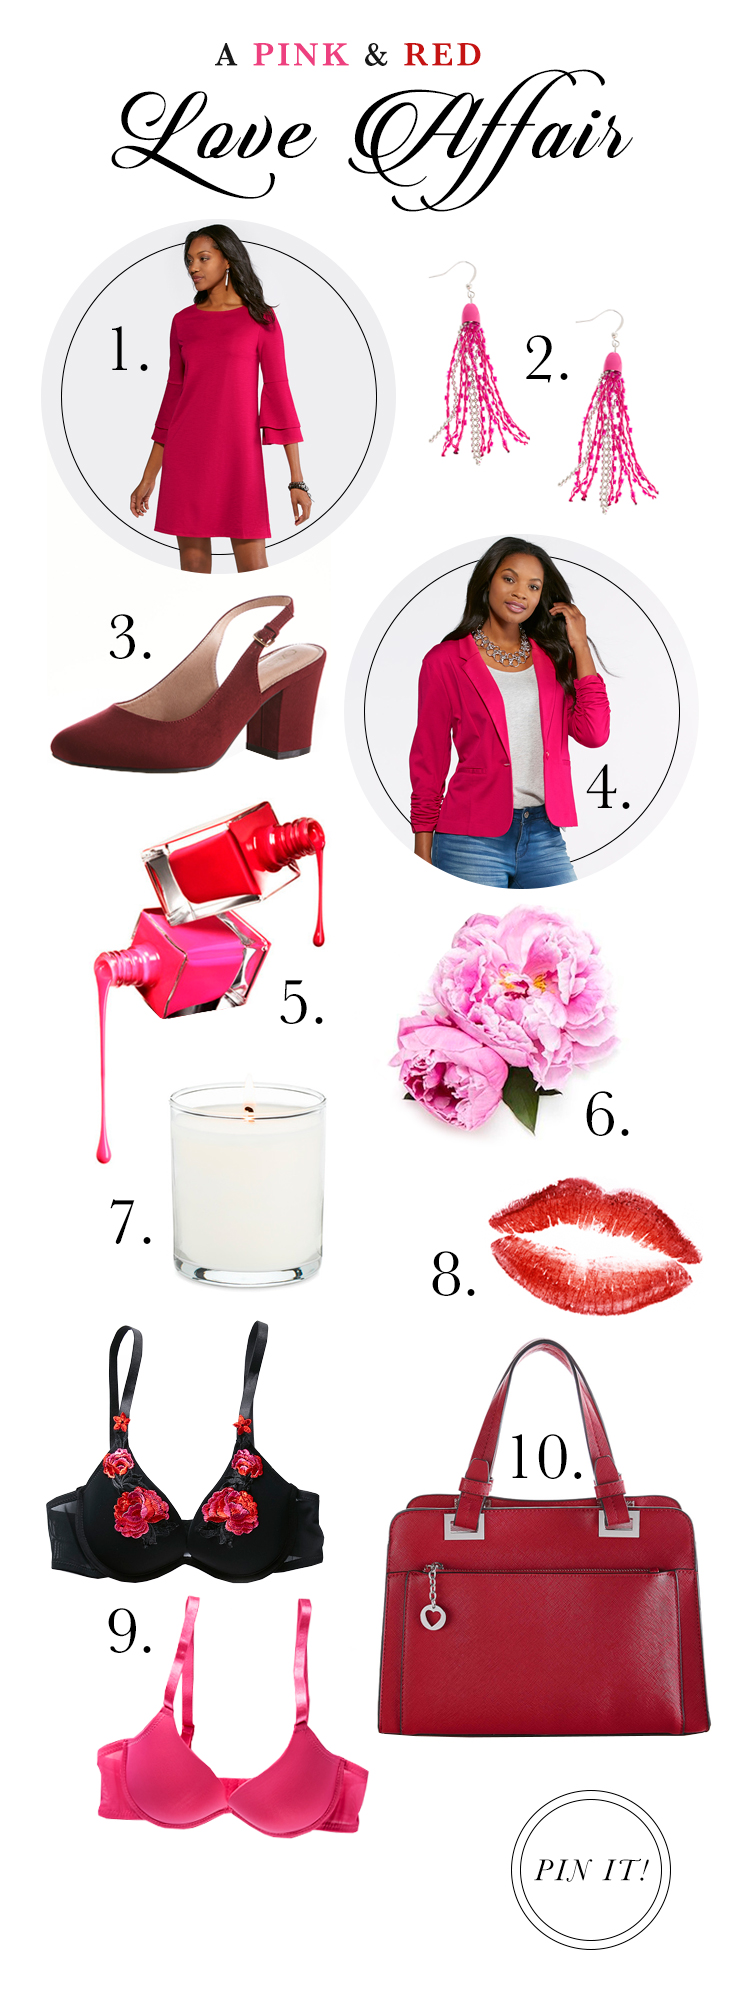 """""""A Pink and Red Love Affair"""" 1. Pink Shift dress 2. Pink Statement Earrings 3. red heels 4. pink blazer 5. pink and red nailpolish 6. pink flowers 7. candle 8. red lipstick 9. red and pink bras 10. red handbag"""